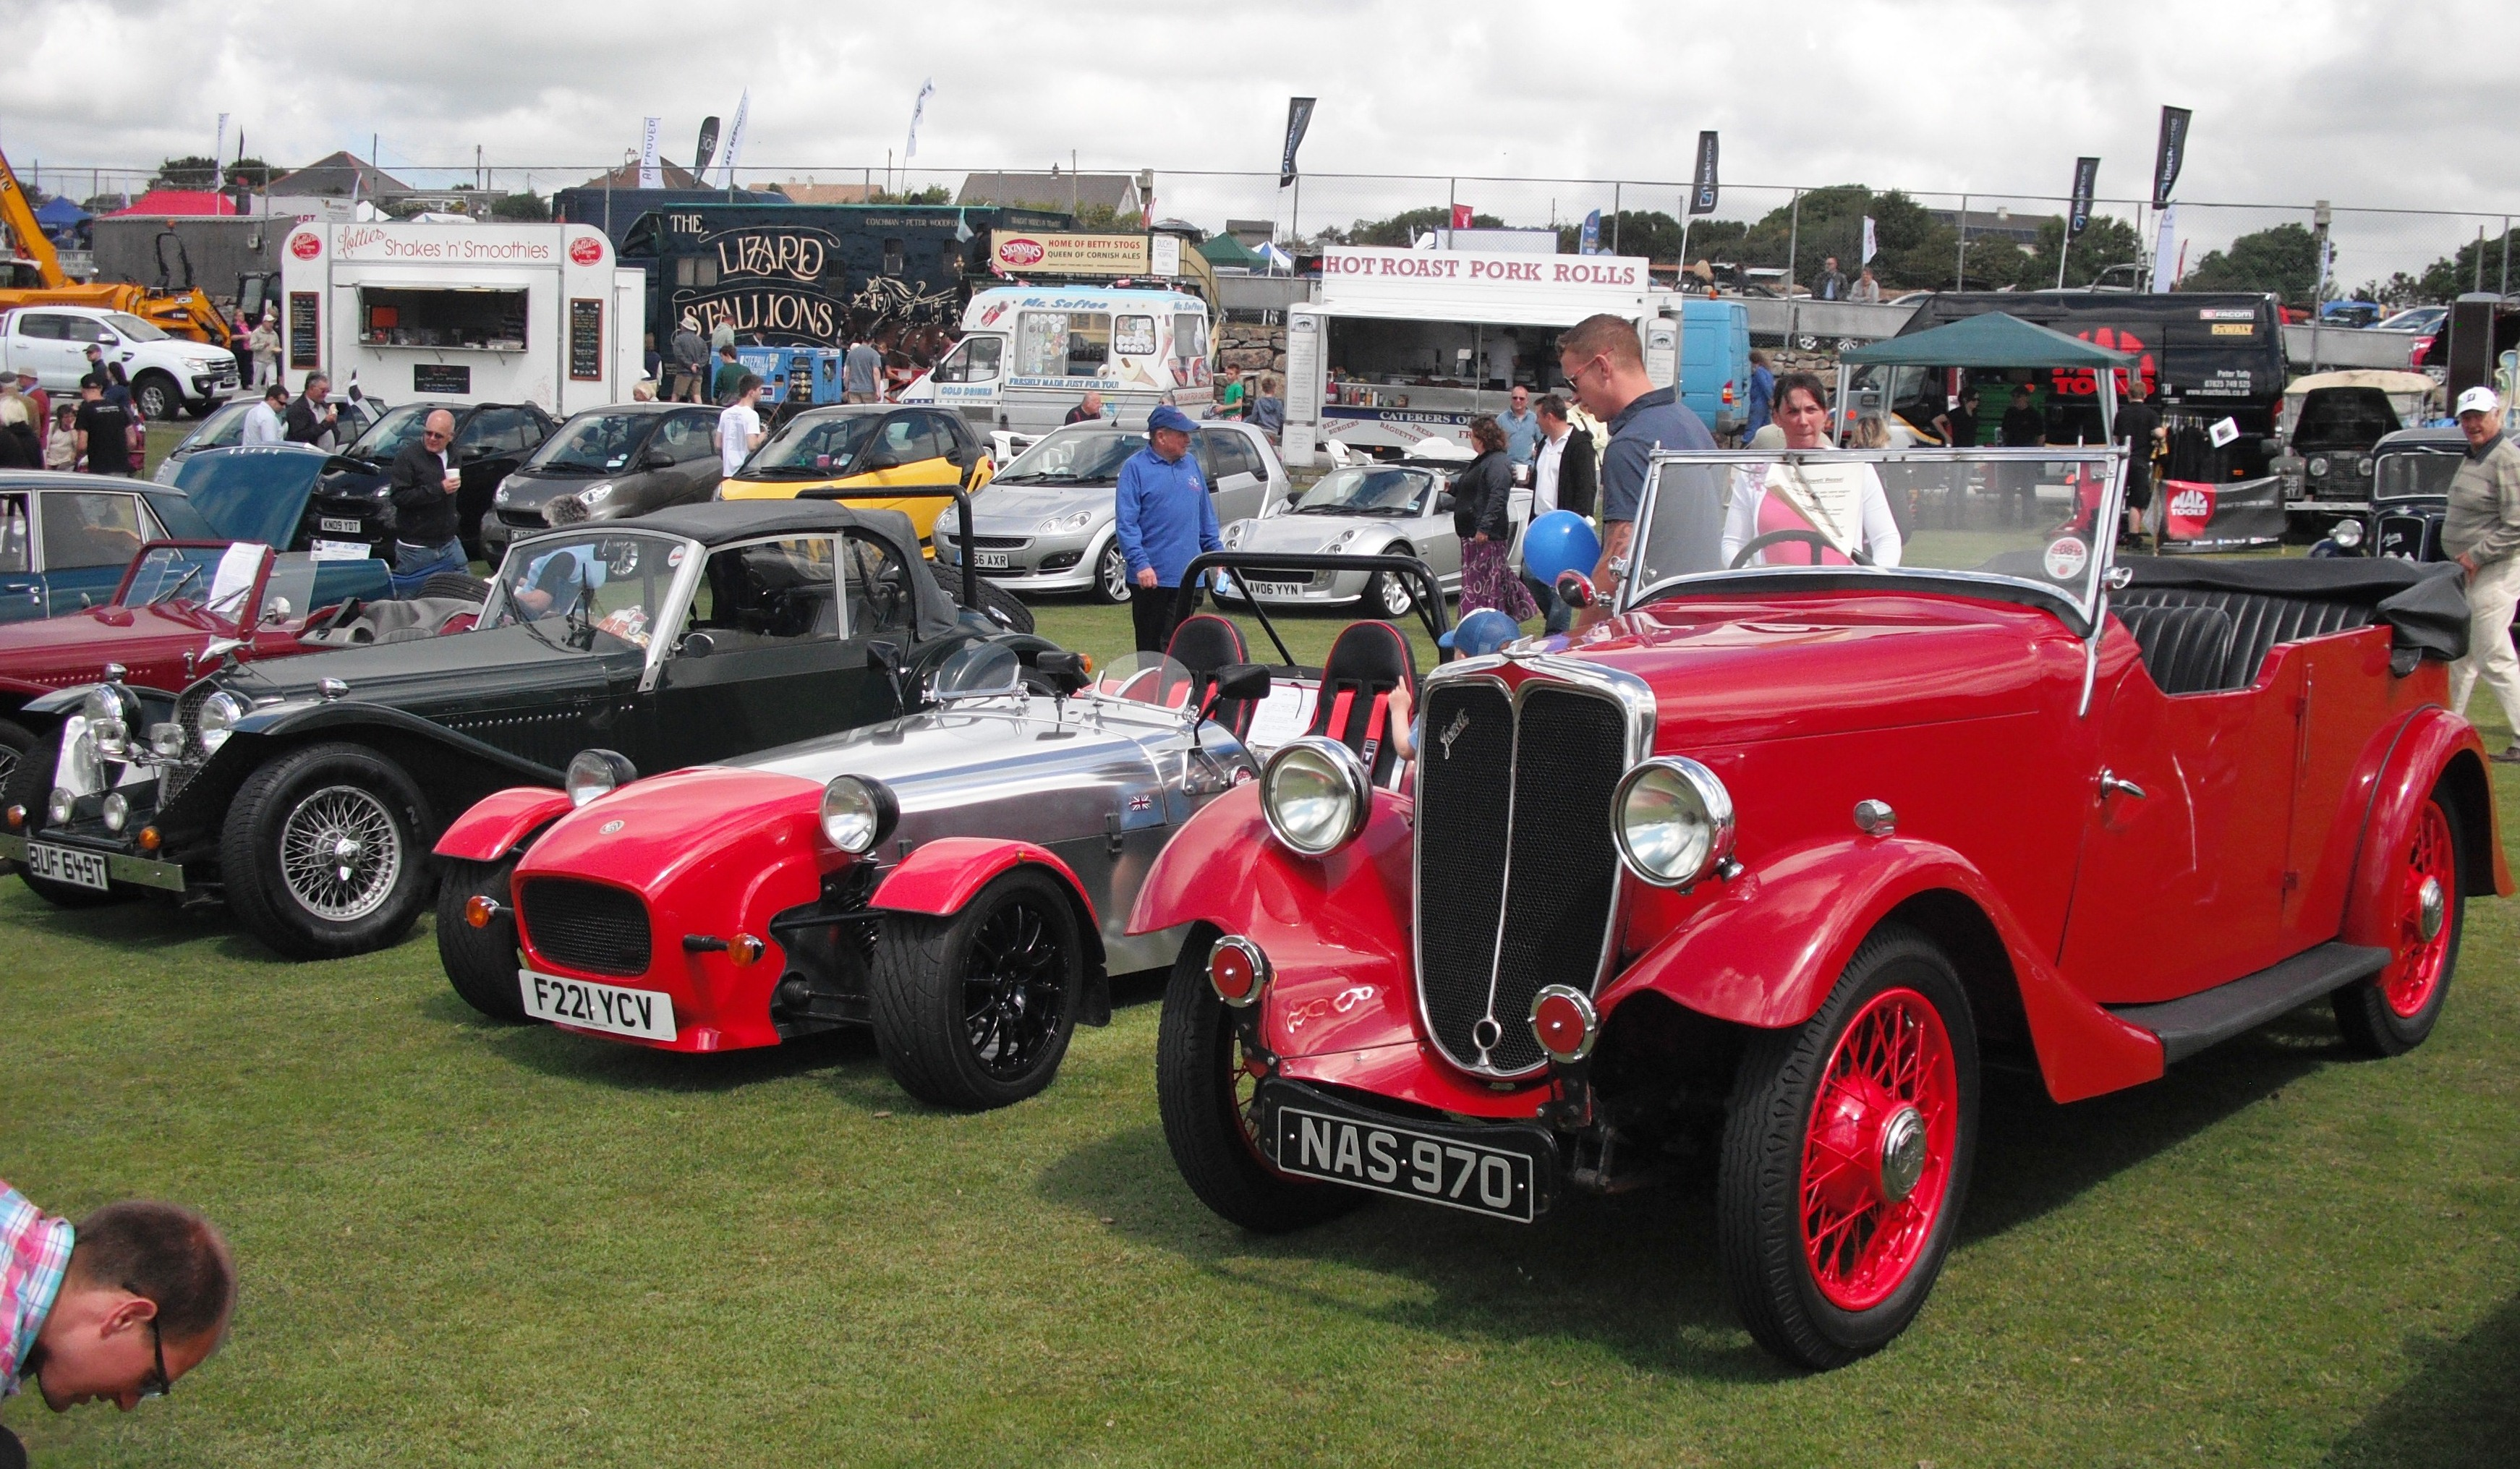 wEST cWLL mOTOR sHOW